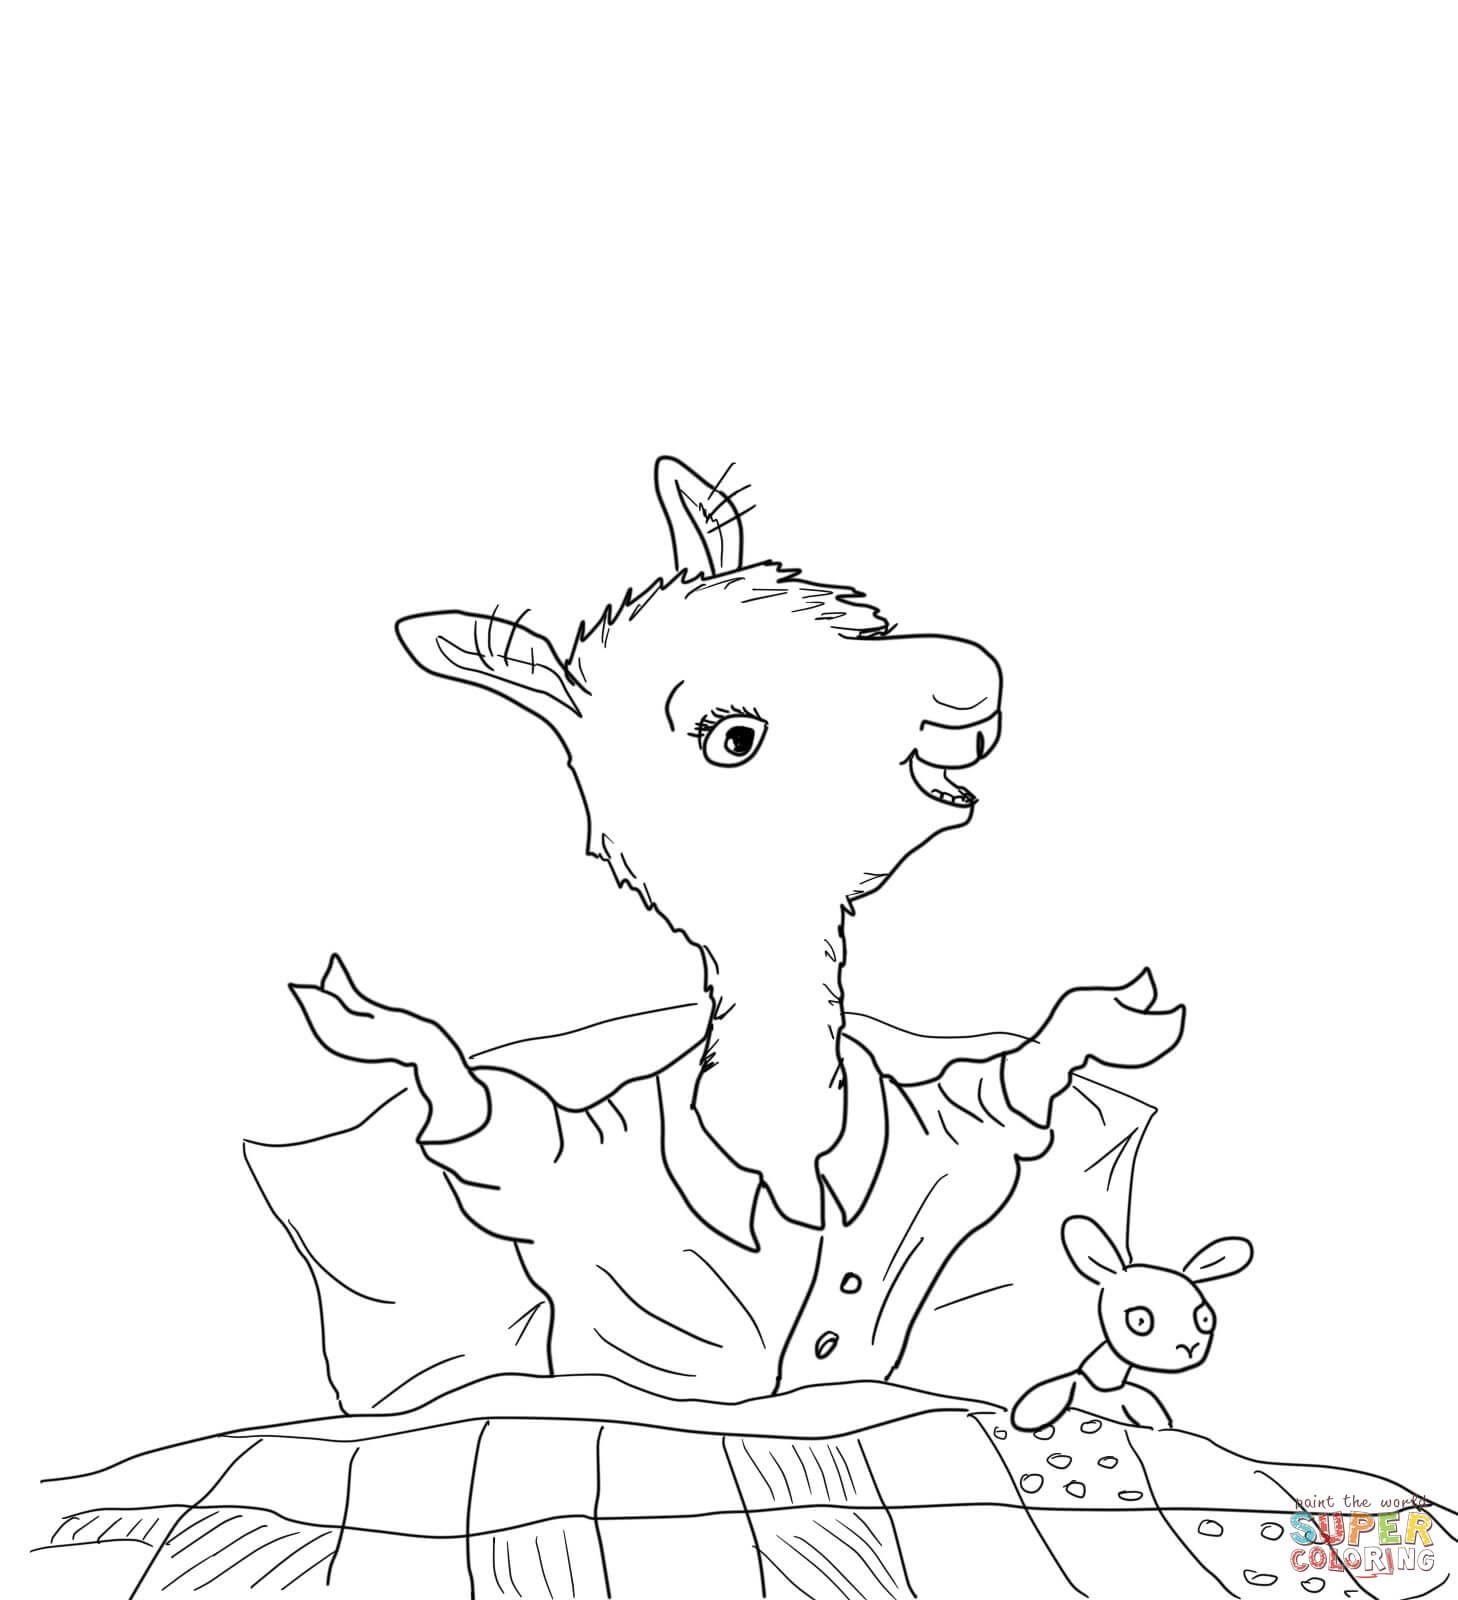 Pajamas Coloring Page - Coloring Home - Free Printable Pajama Coloring Pages